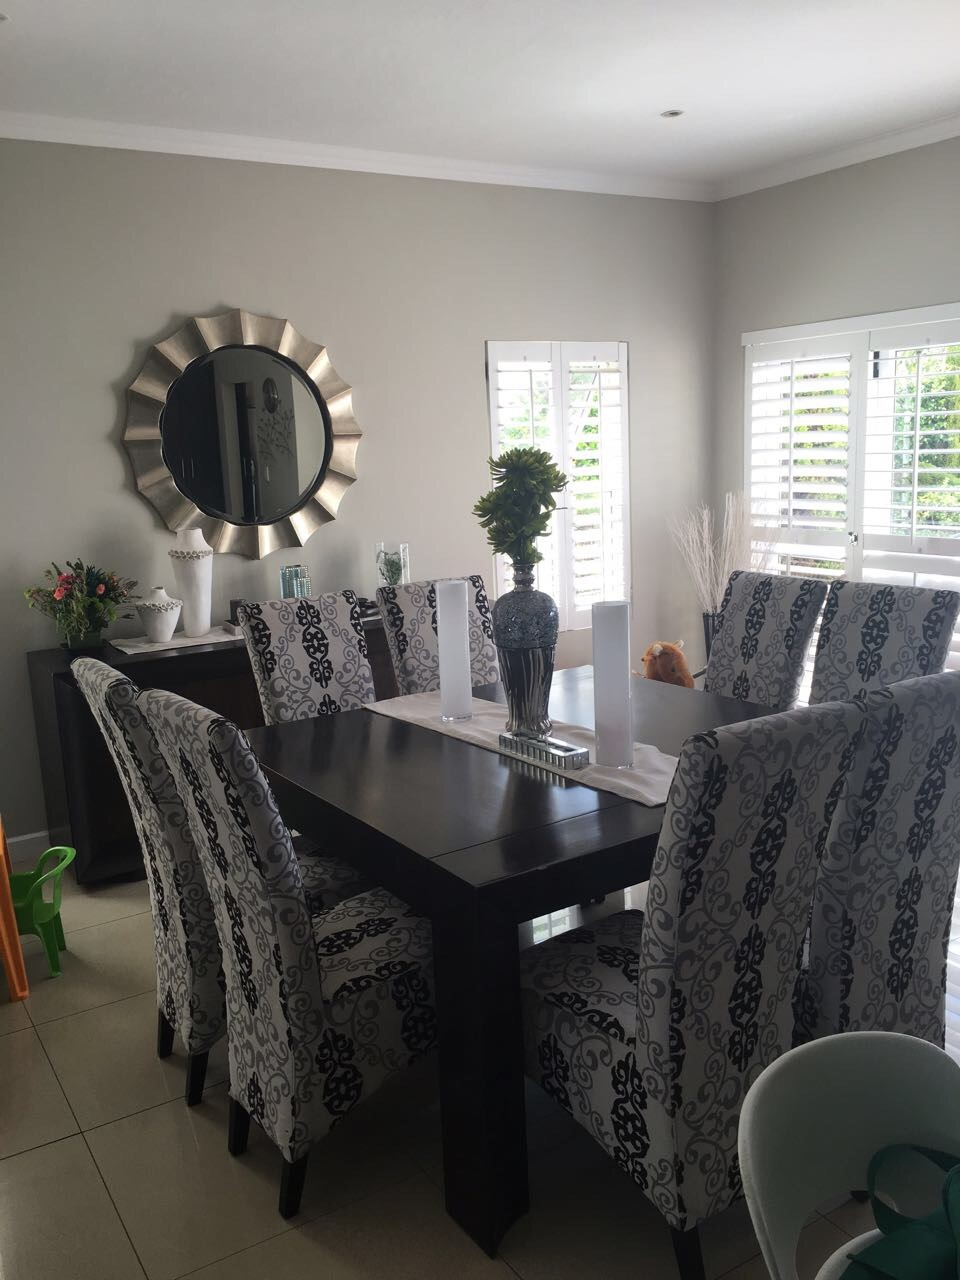 Modern excellent condition 8 seater dining table and chairs